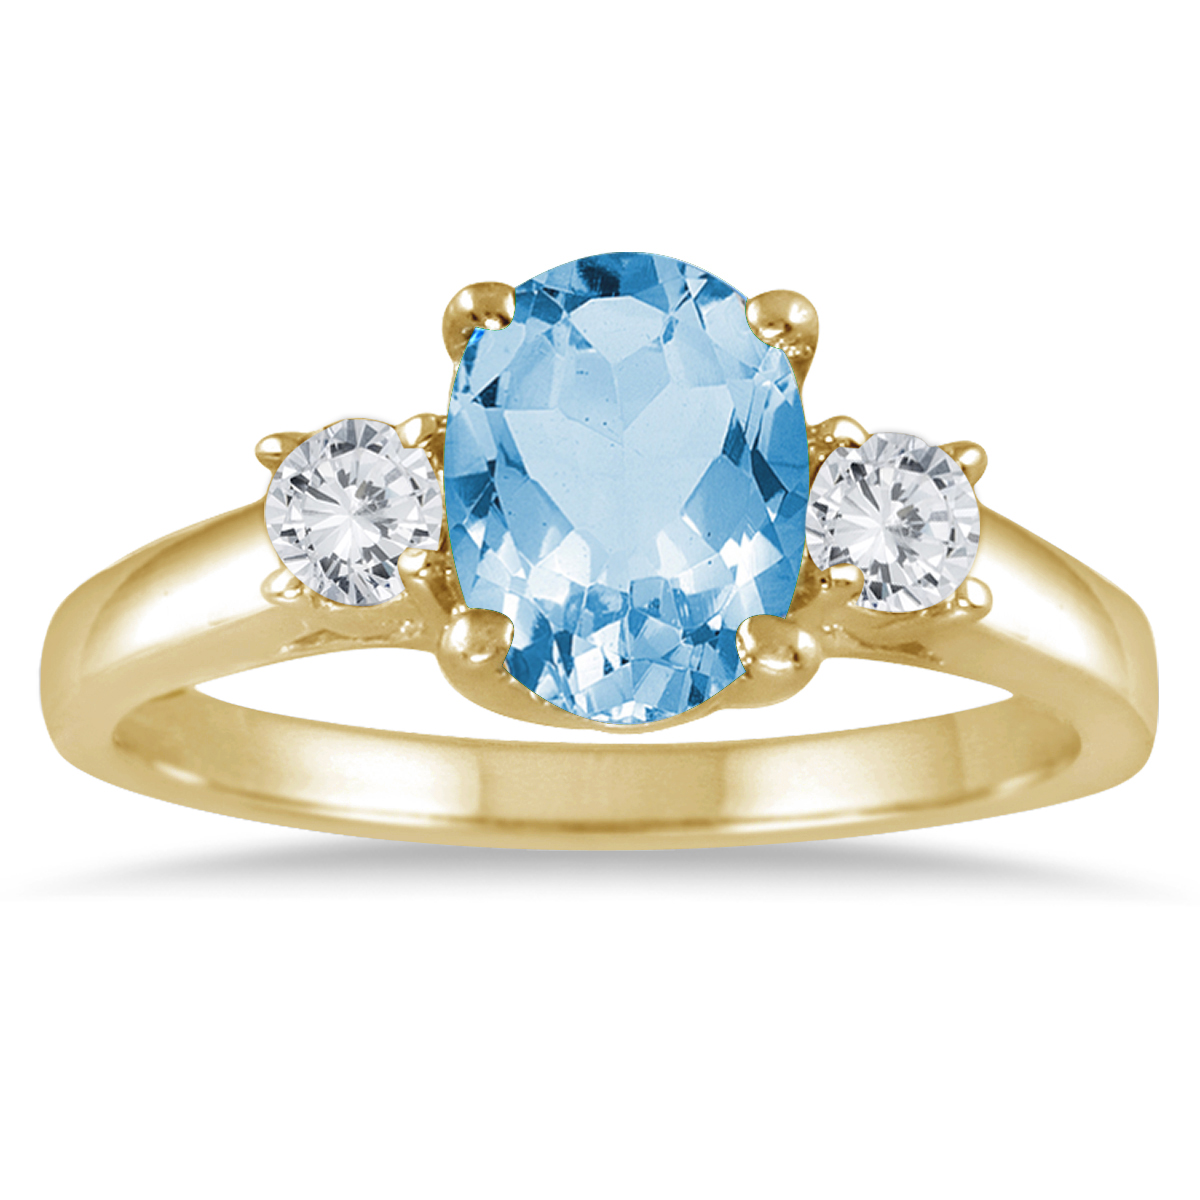 1 3/4 Carat Blue Topaz and Diamond Three Stone Ring 14K Yellow Gold